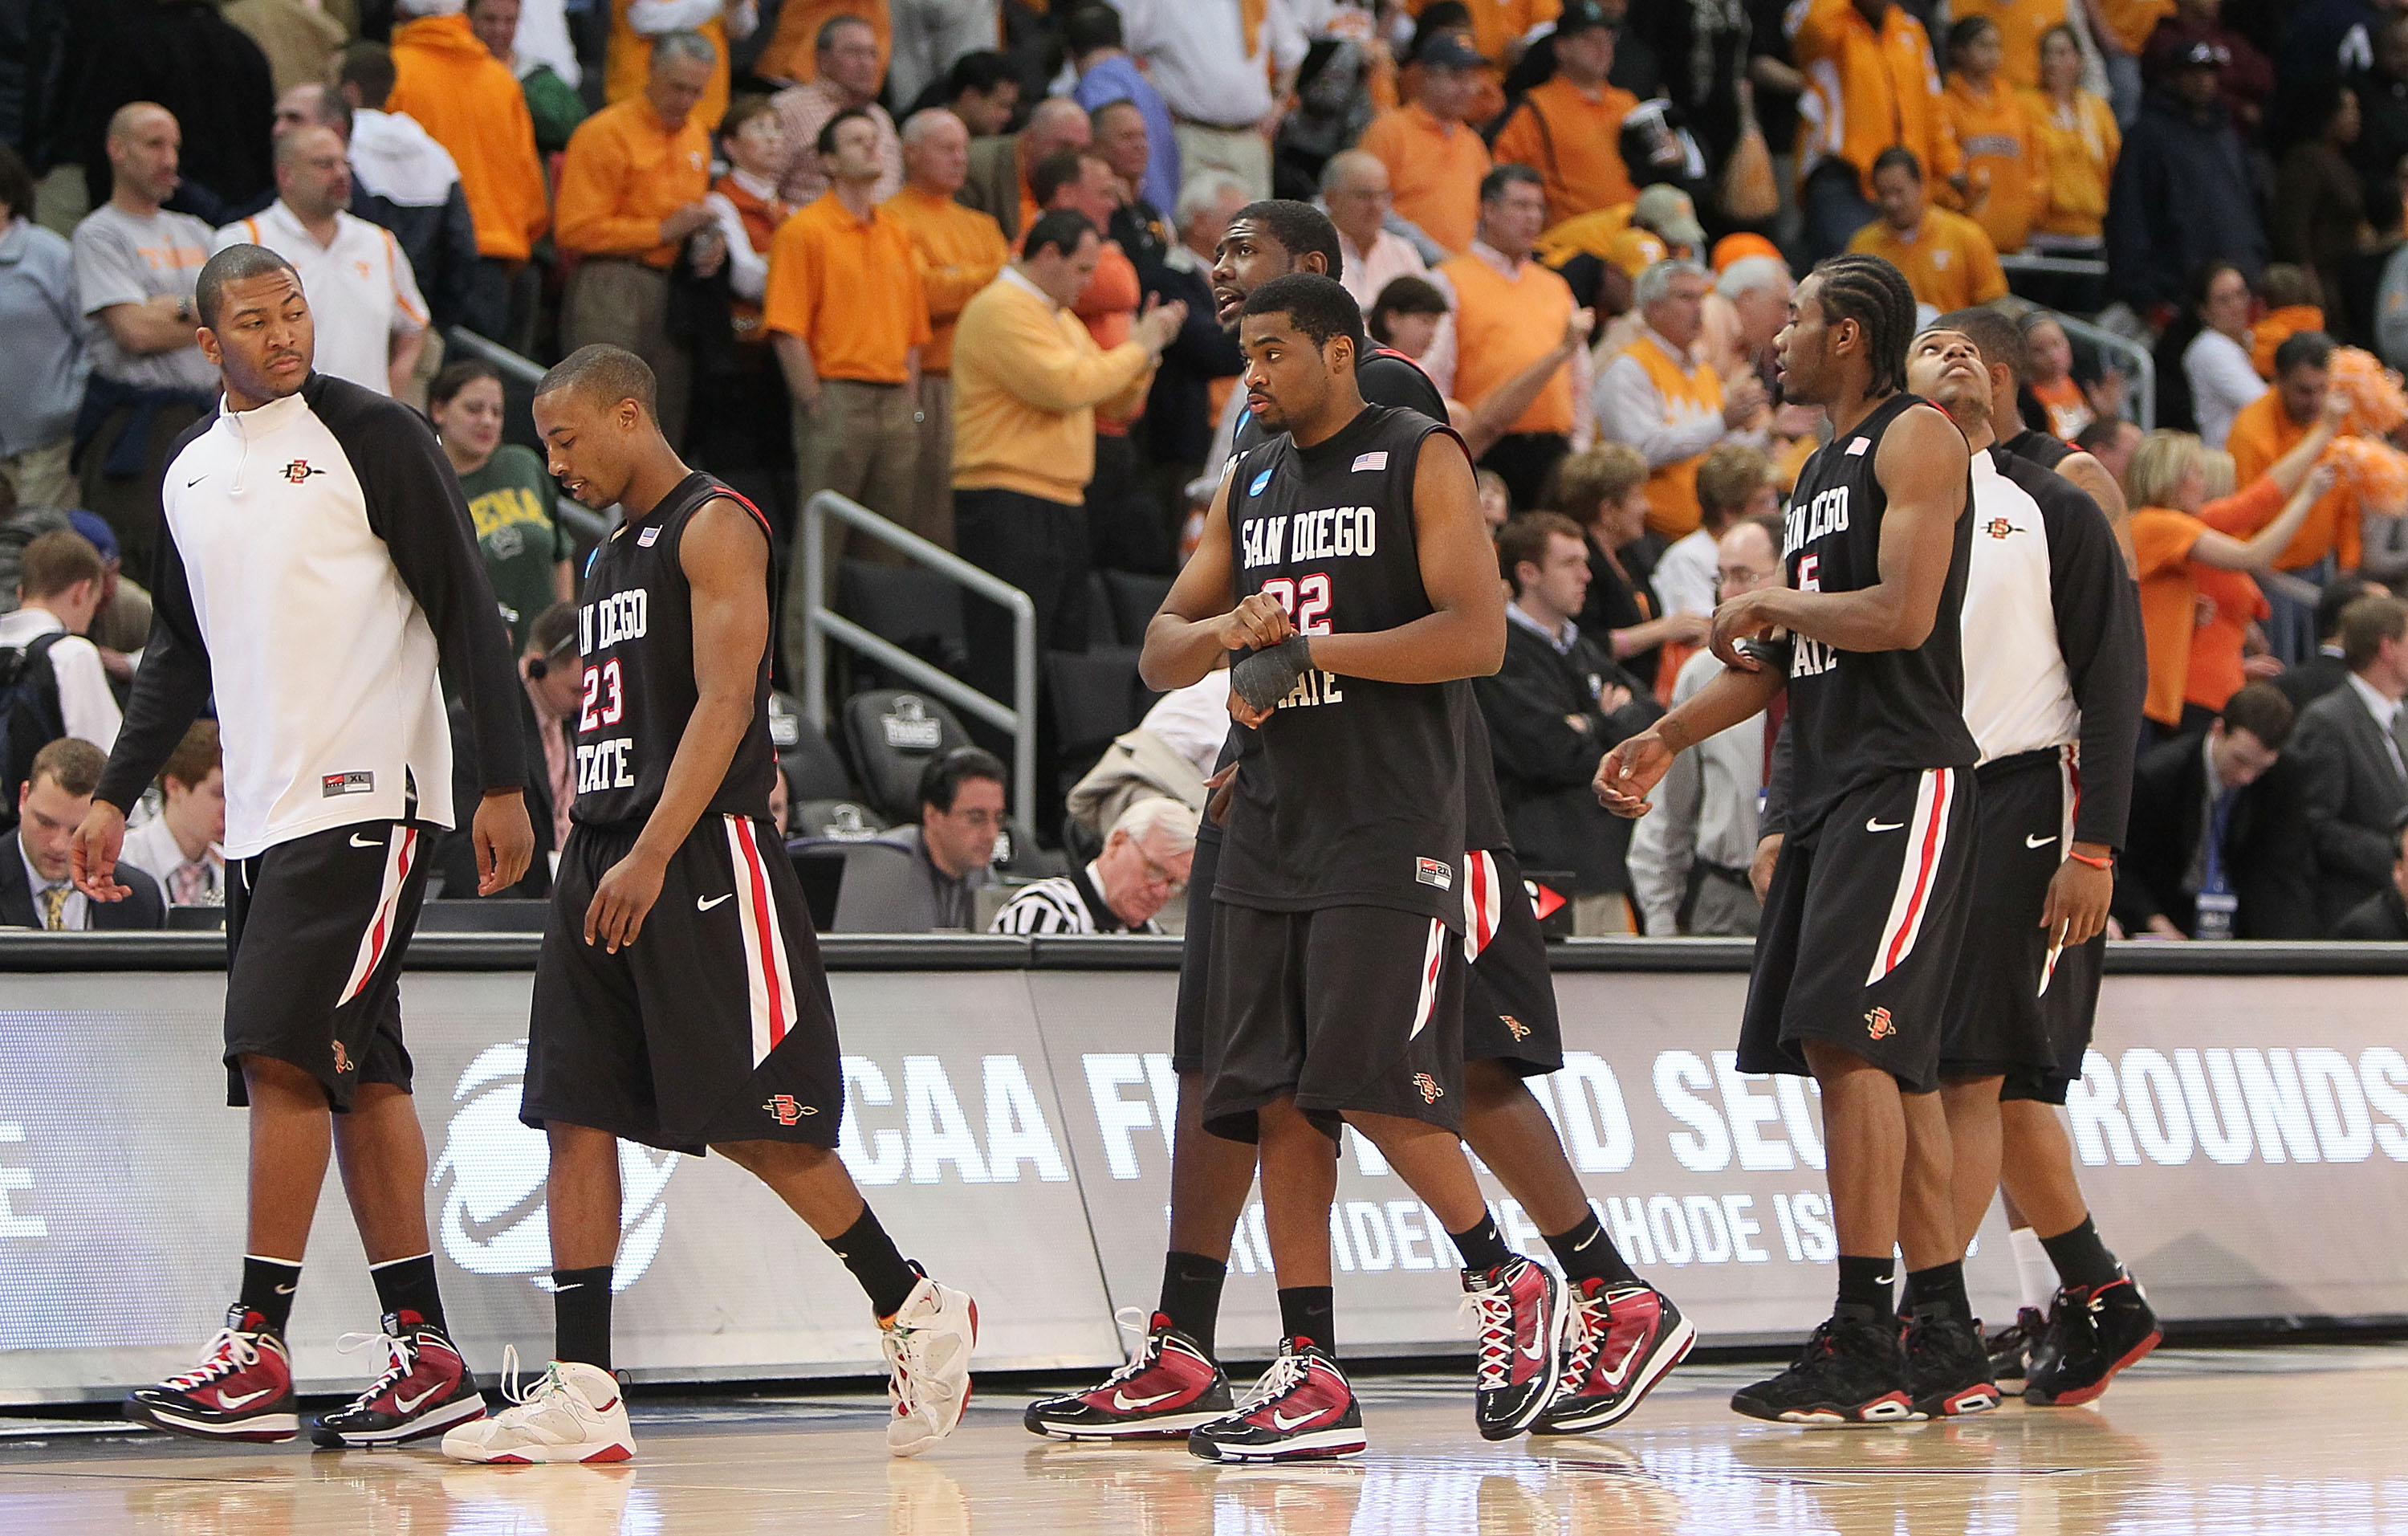 PROVIDENCE, RI - MARCH 19:  Members of the San Diego State Aztecs leave the court after a 62-59 loss to the Tennessee Volunteers during the first round of the 2010 NCAA men's basketball tournament at Dunkin' Donuts Center on March 19, 2010 in Providence,